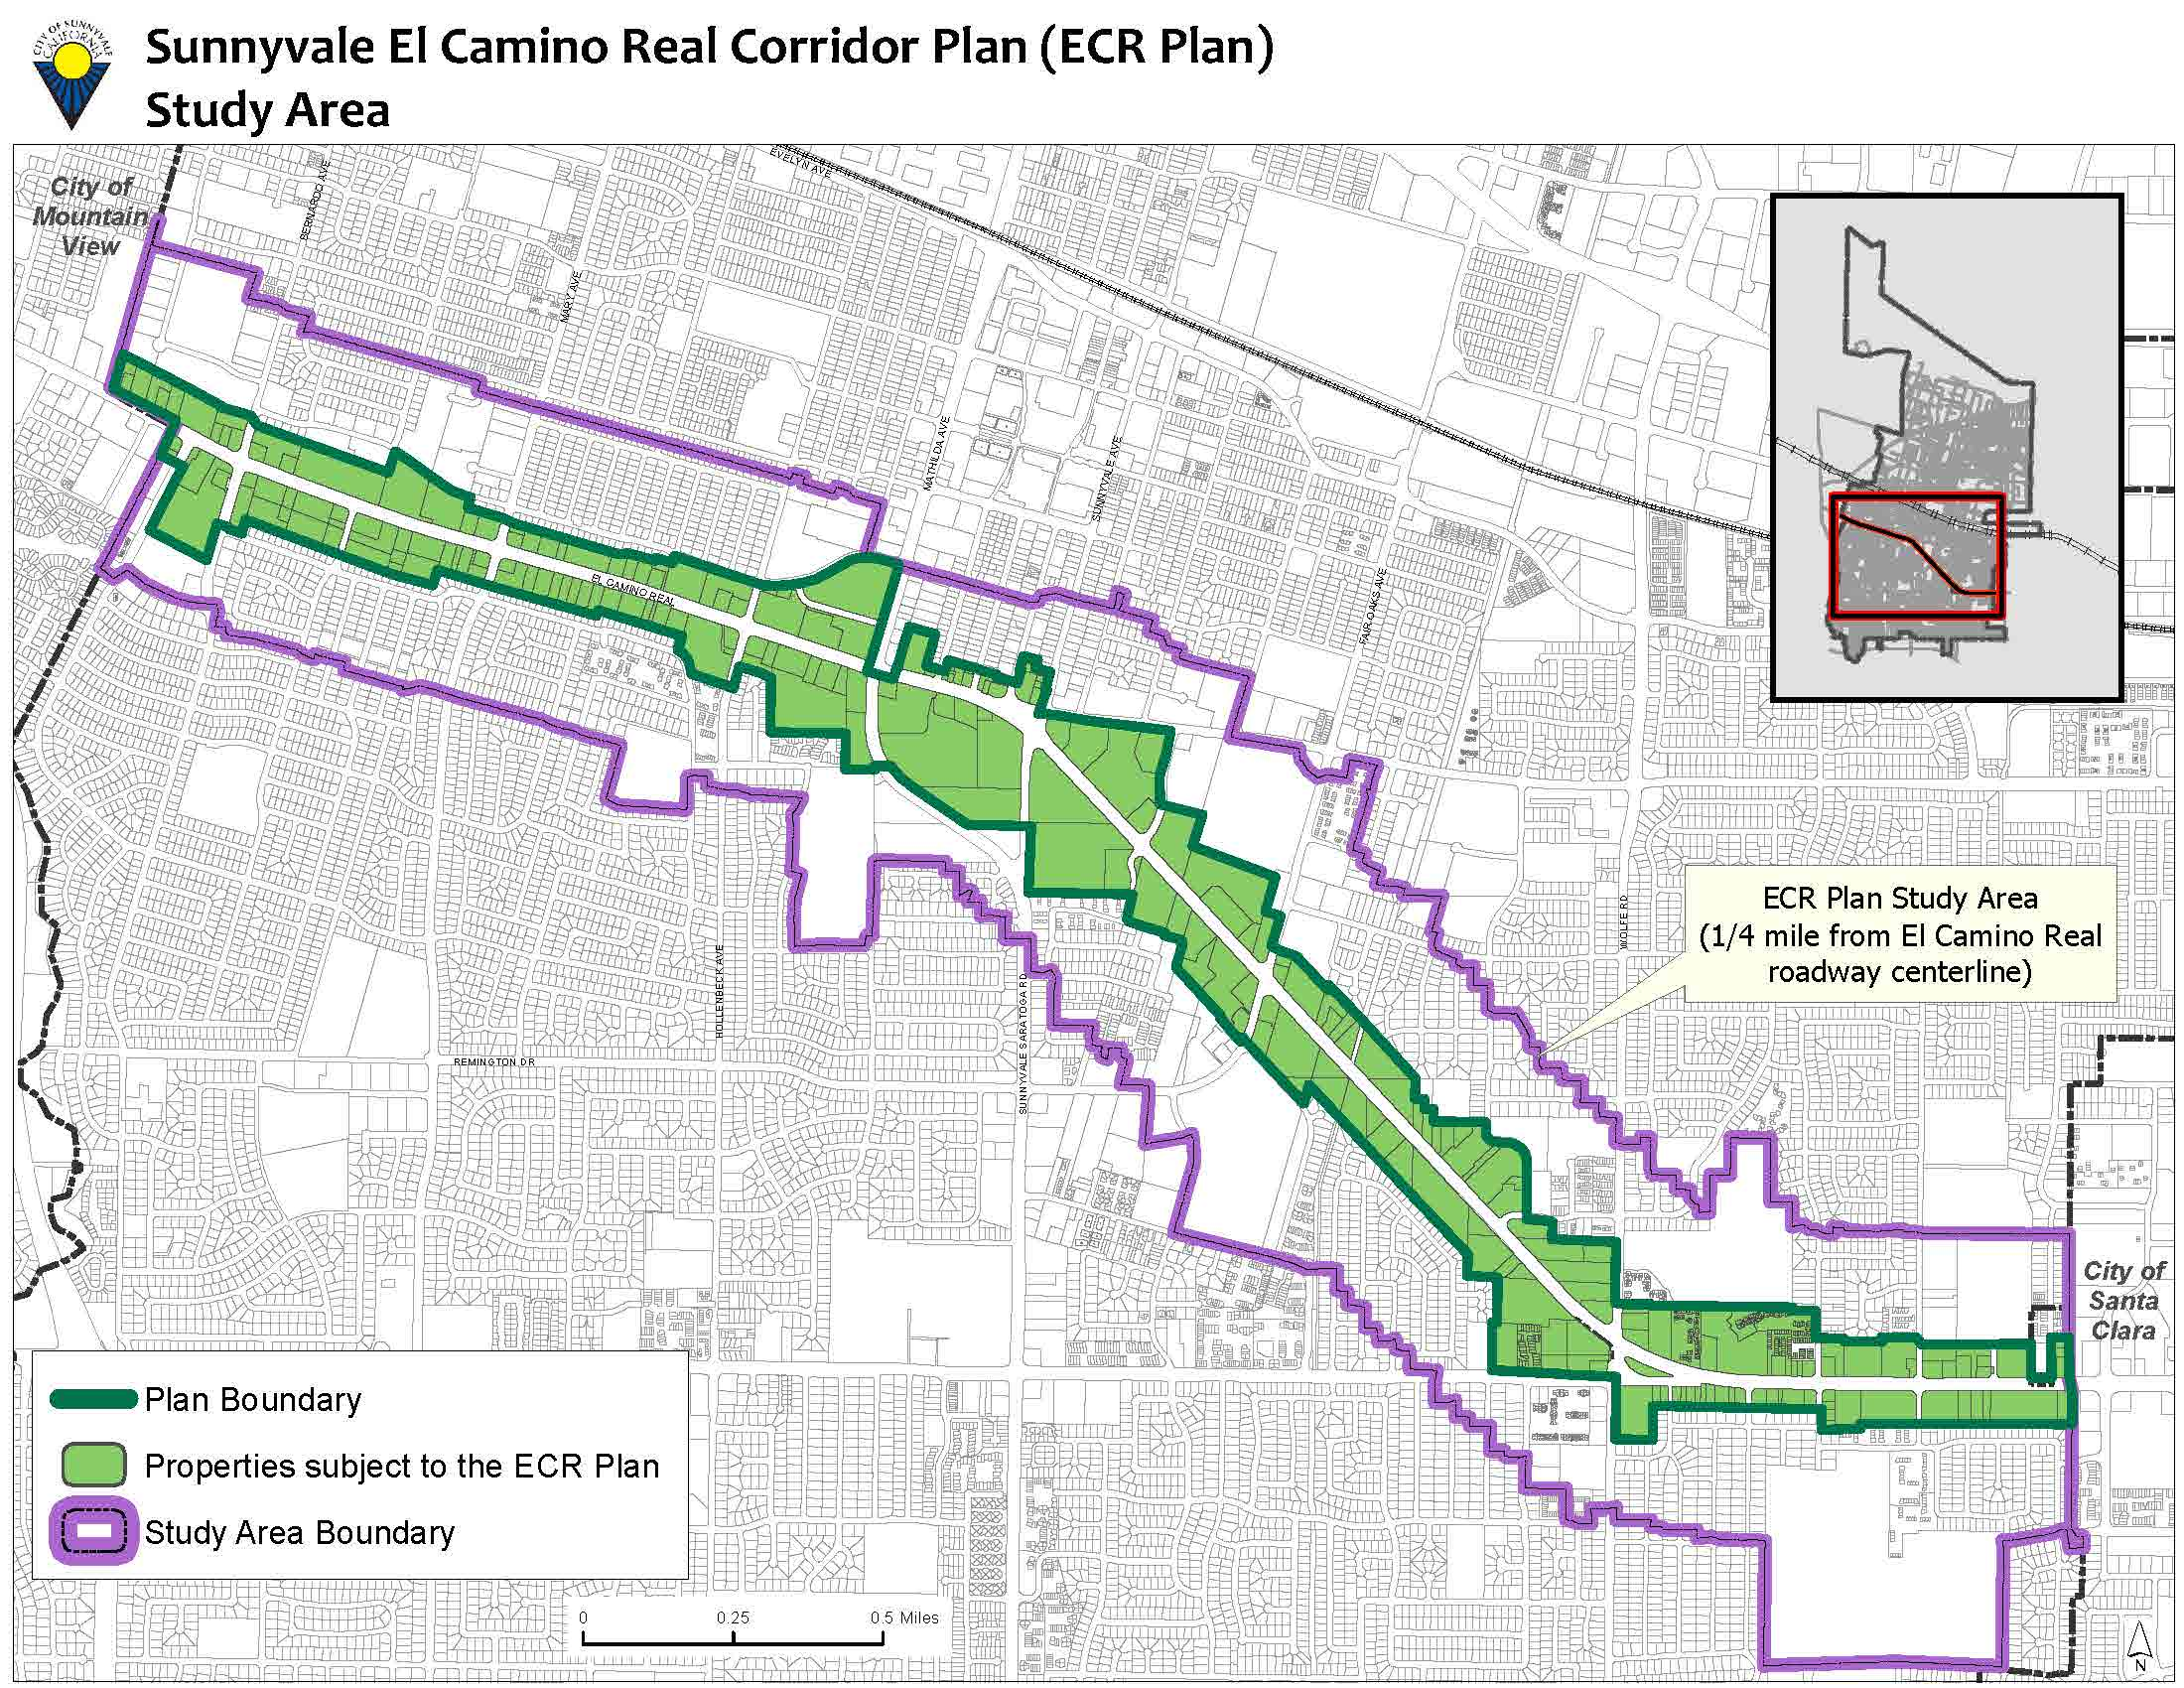 Map showing the plan's boundary, properties subect to the El Camino Real Specific Plan's provisions, and the study area boundary.